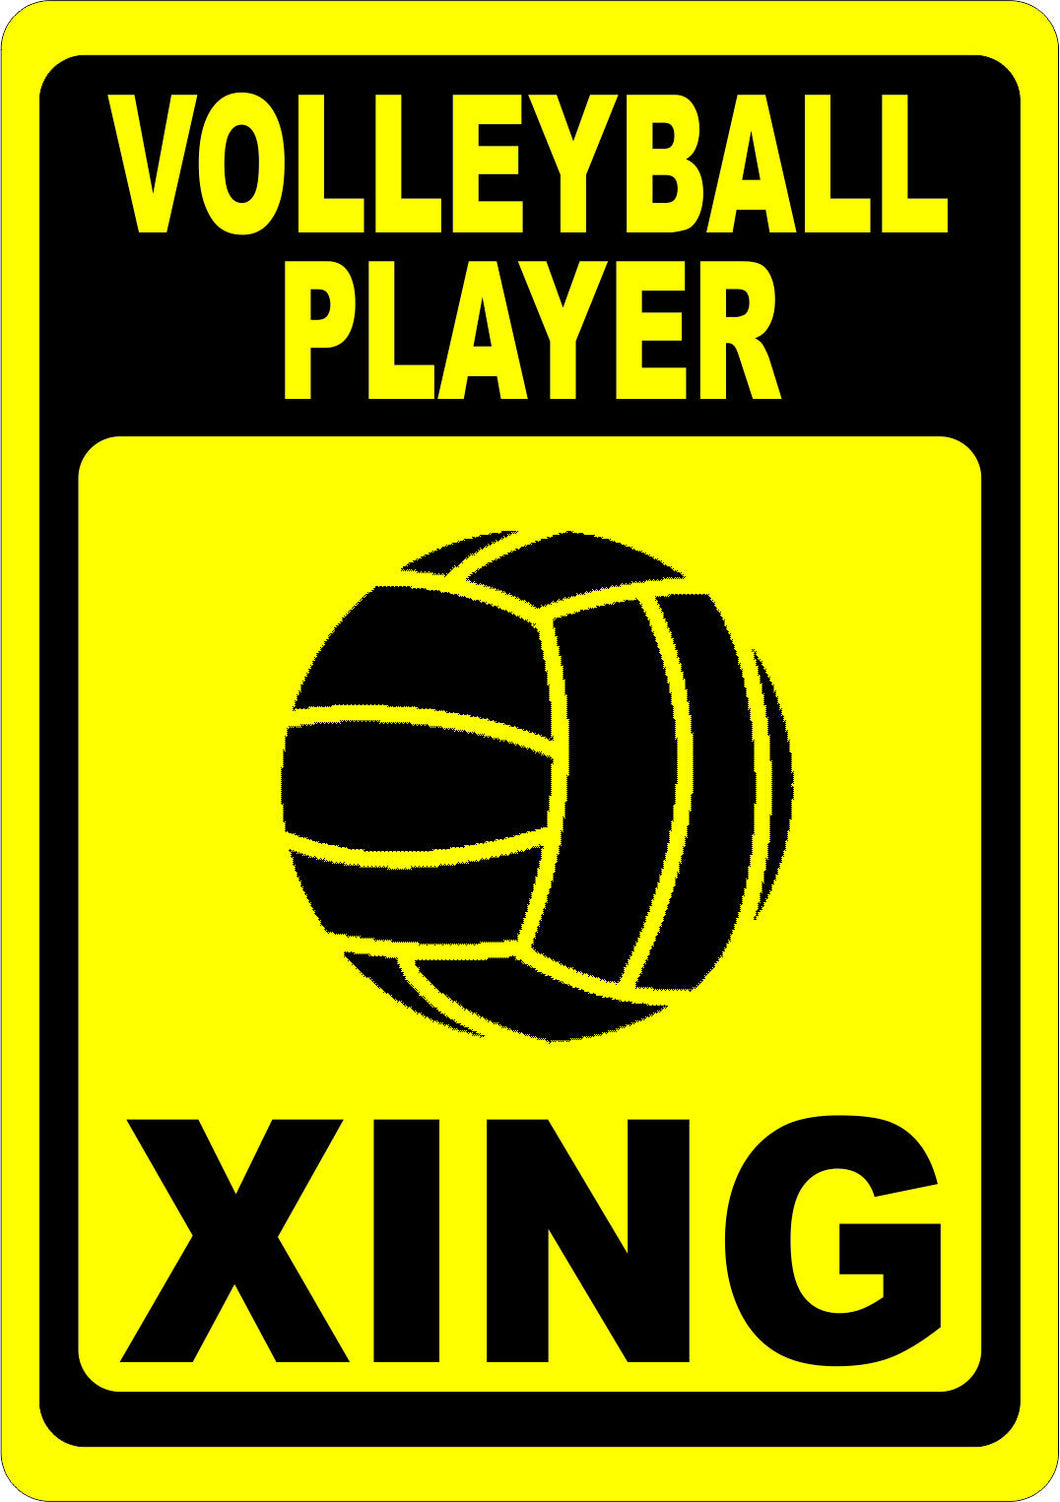 Volleyball Player Crossing Sign